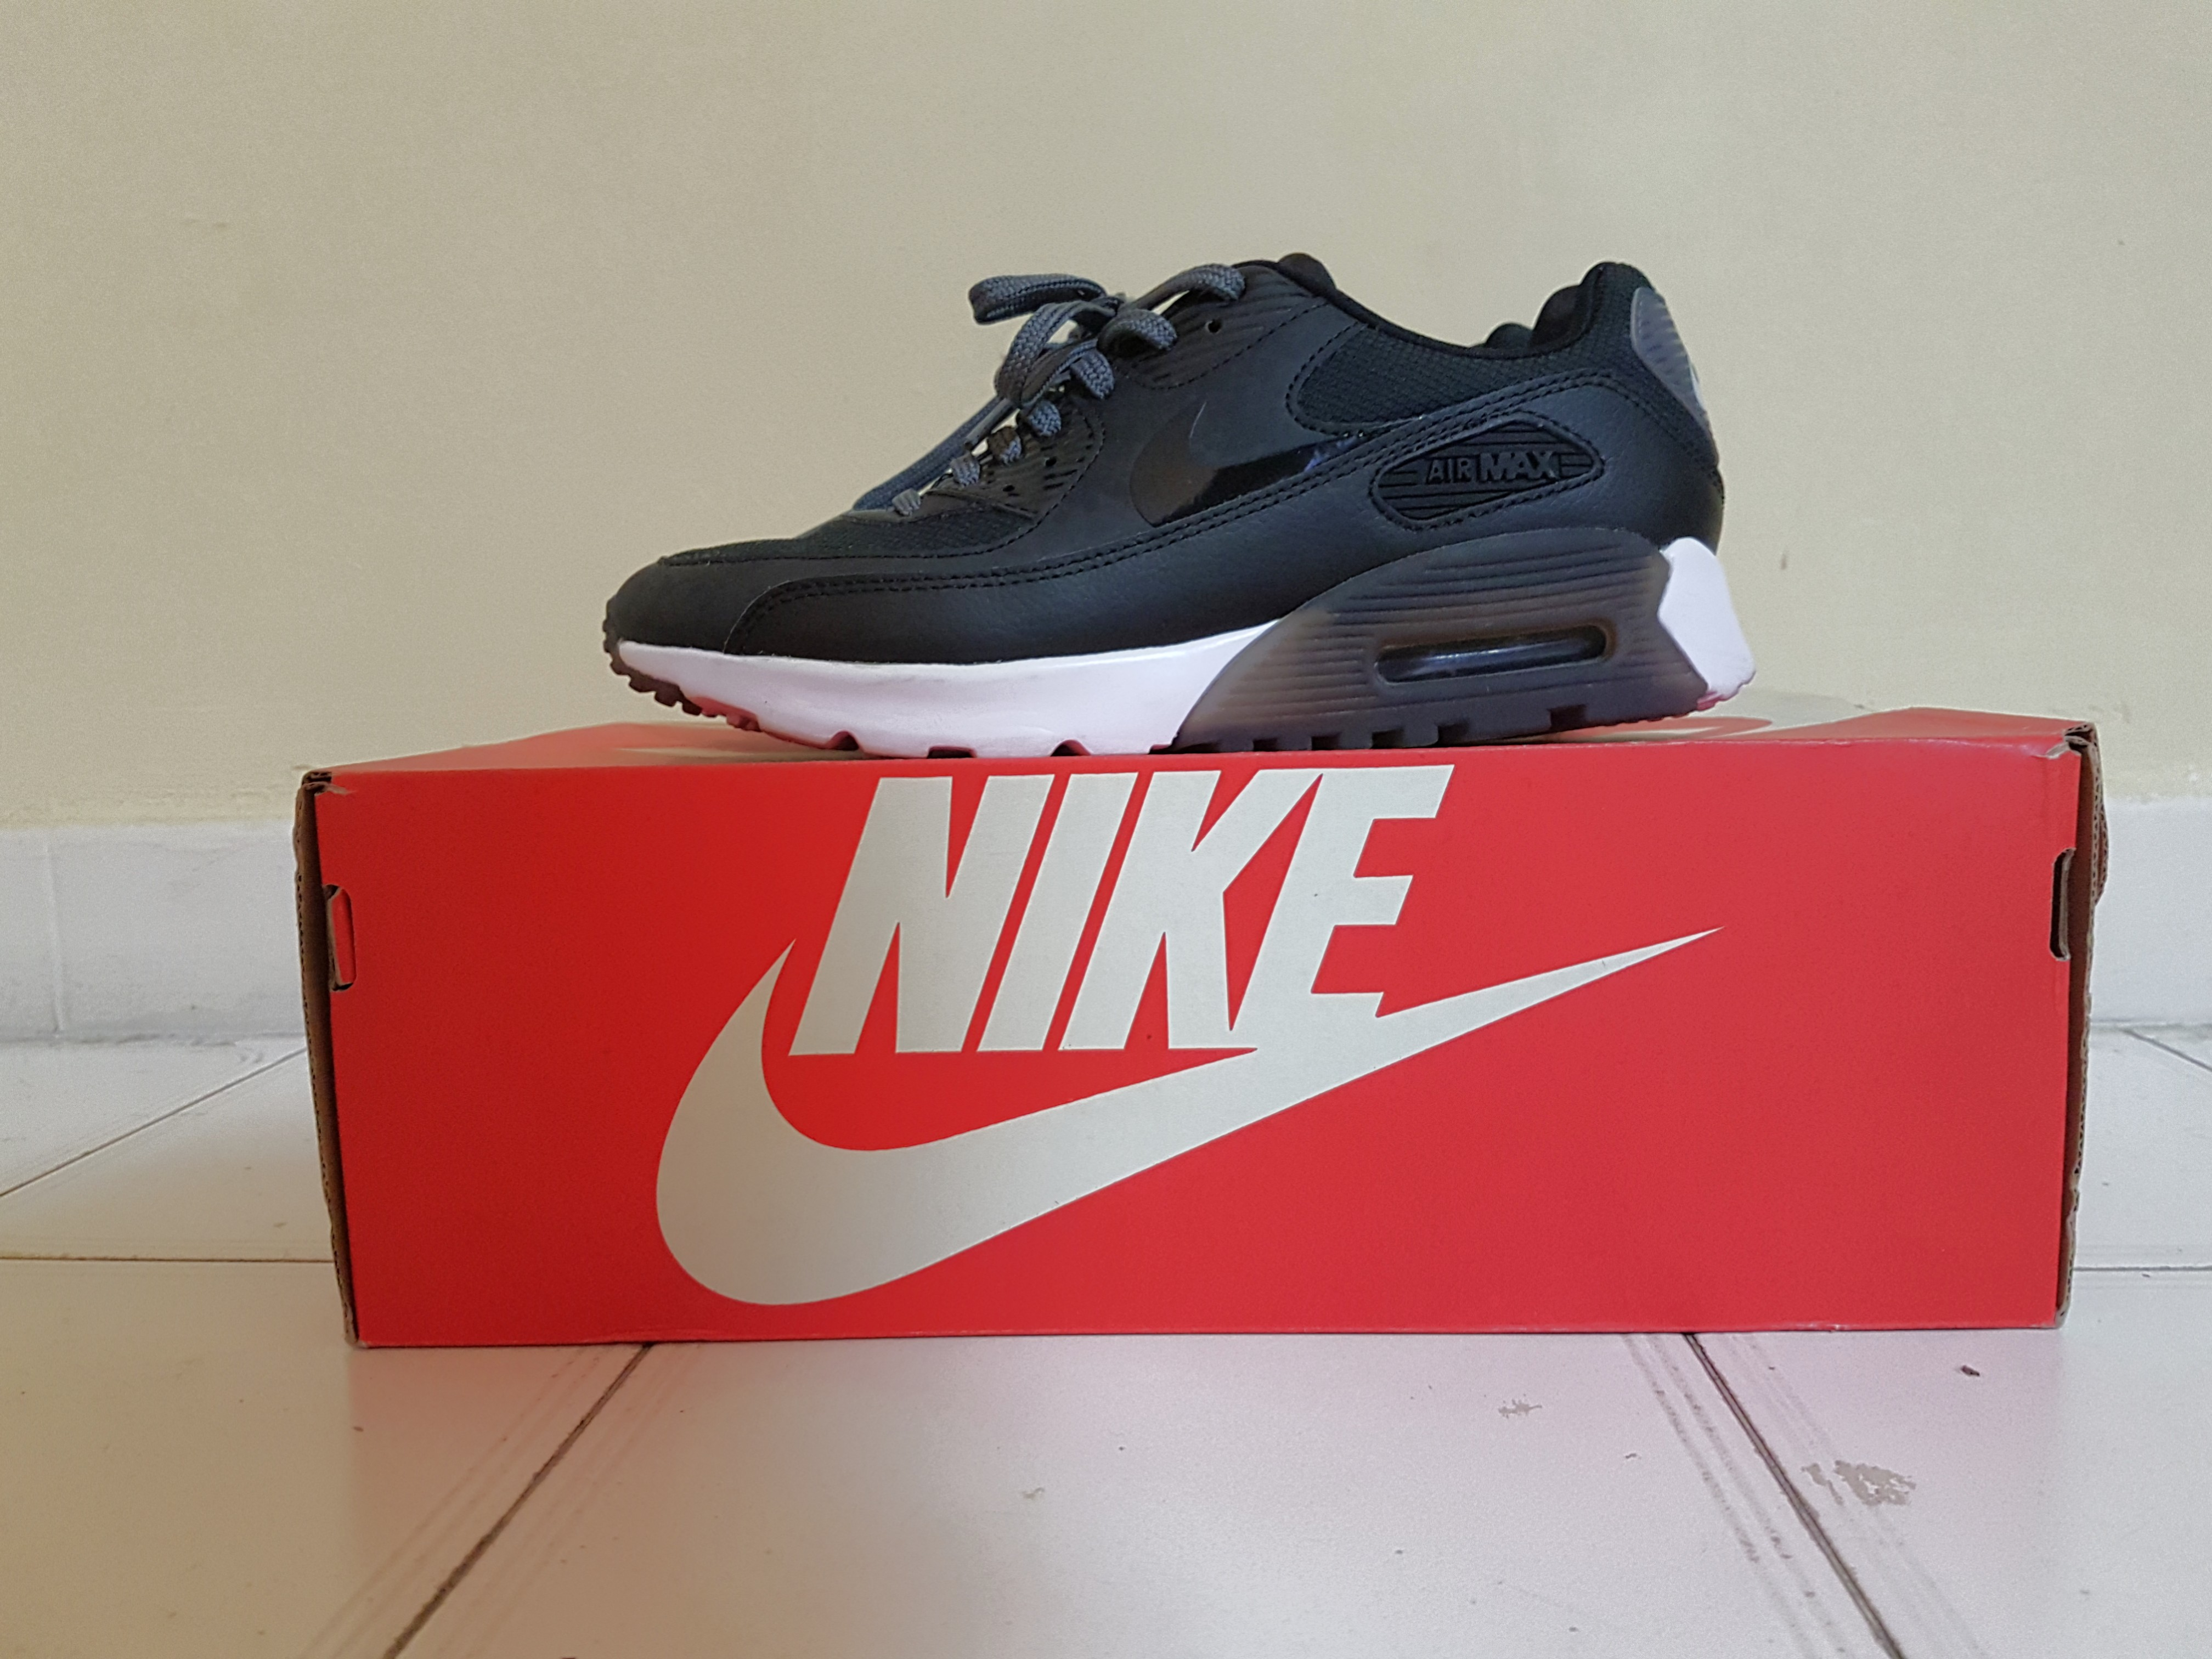 timeless design fd8ee d0ad5 Authentic Nike Air Max 90 Ultra Essential UK Size 3.5, Eur Size 36.5 ...